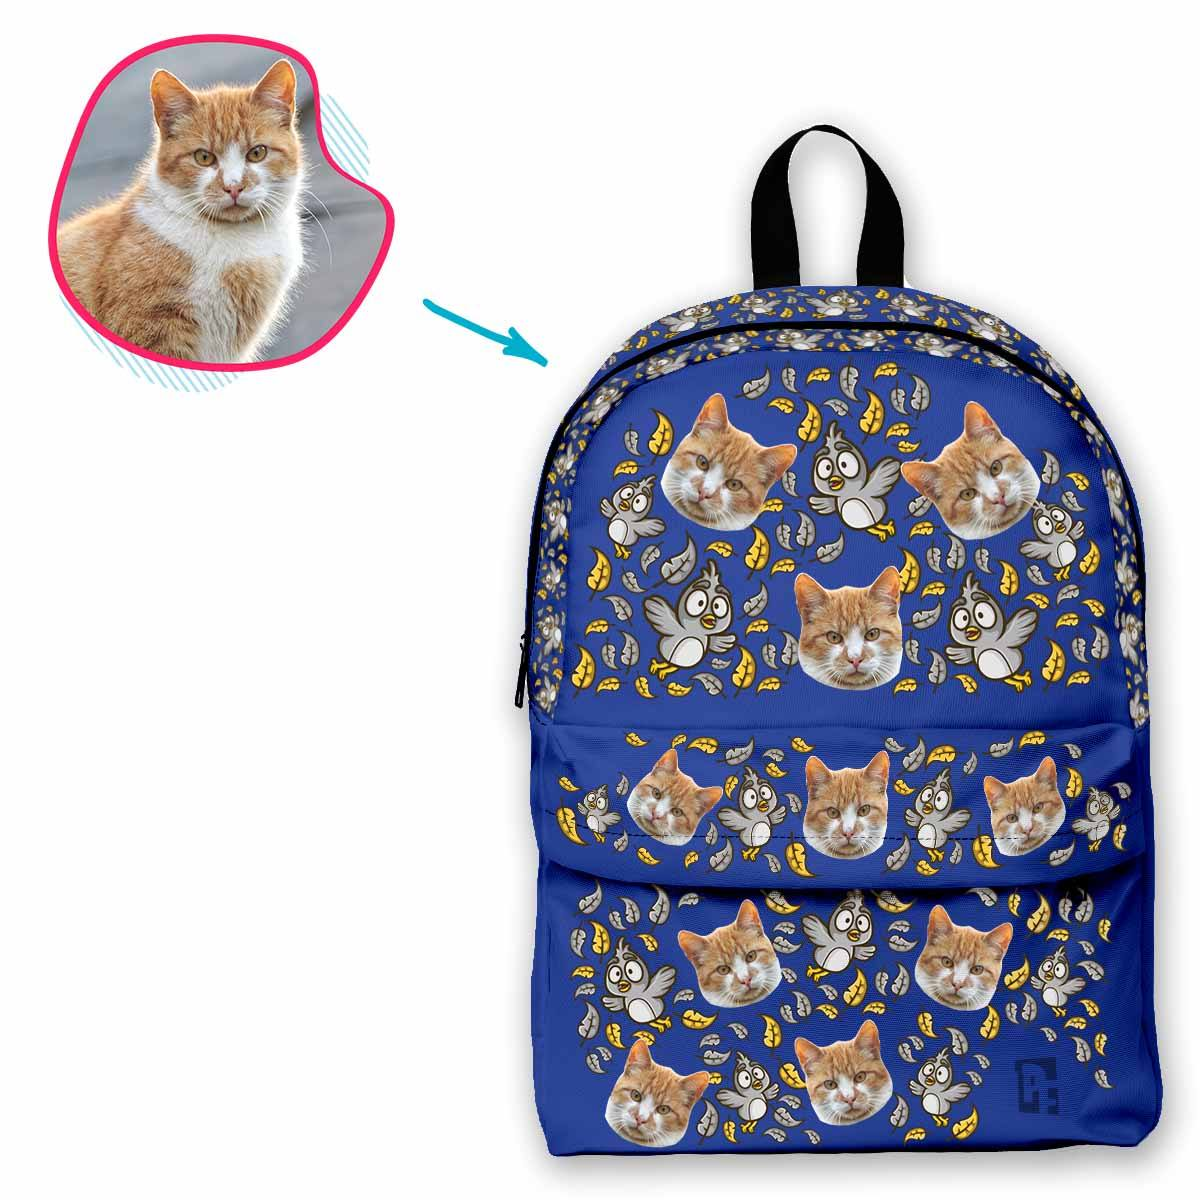 darkblue Bird classic backpack personalized with photo of face printed on it